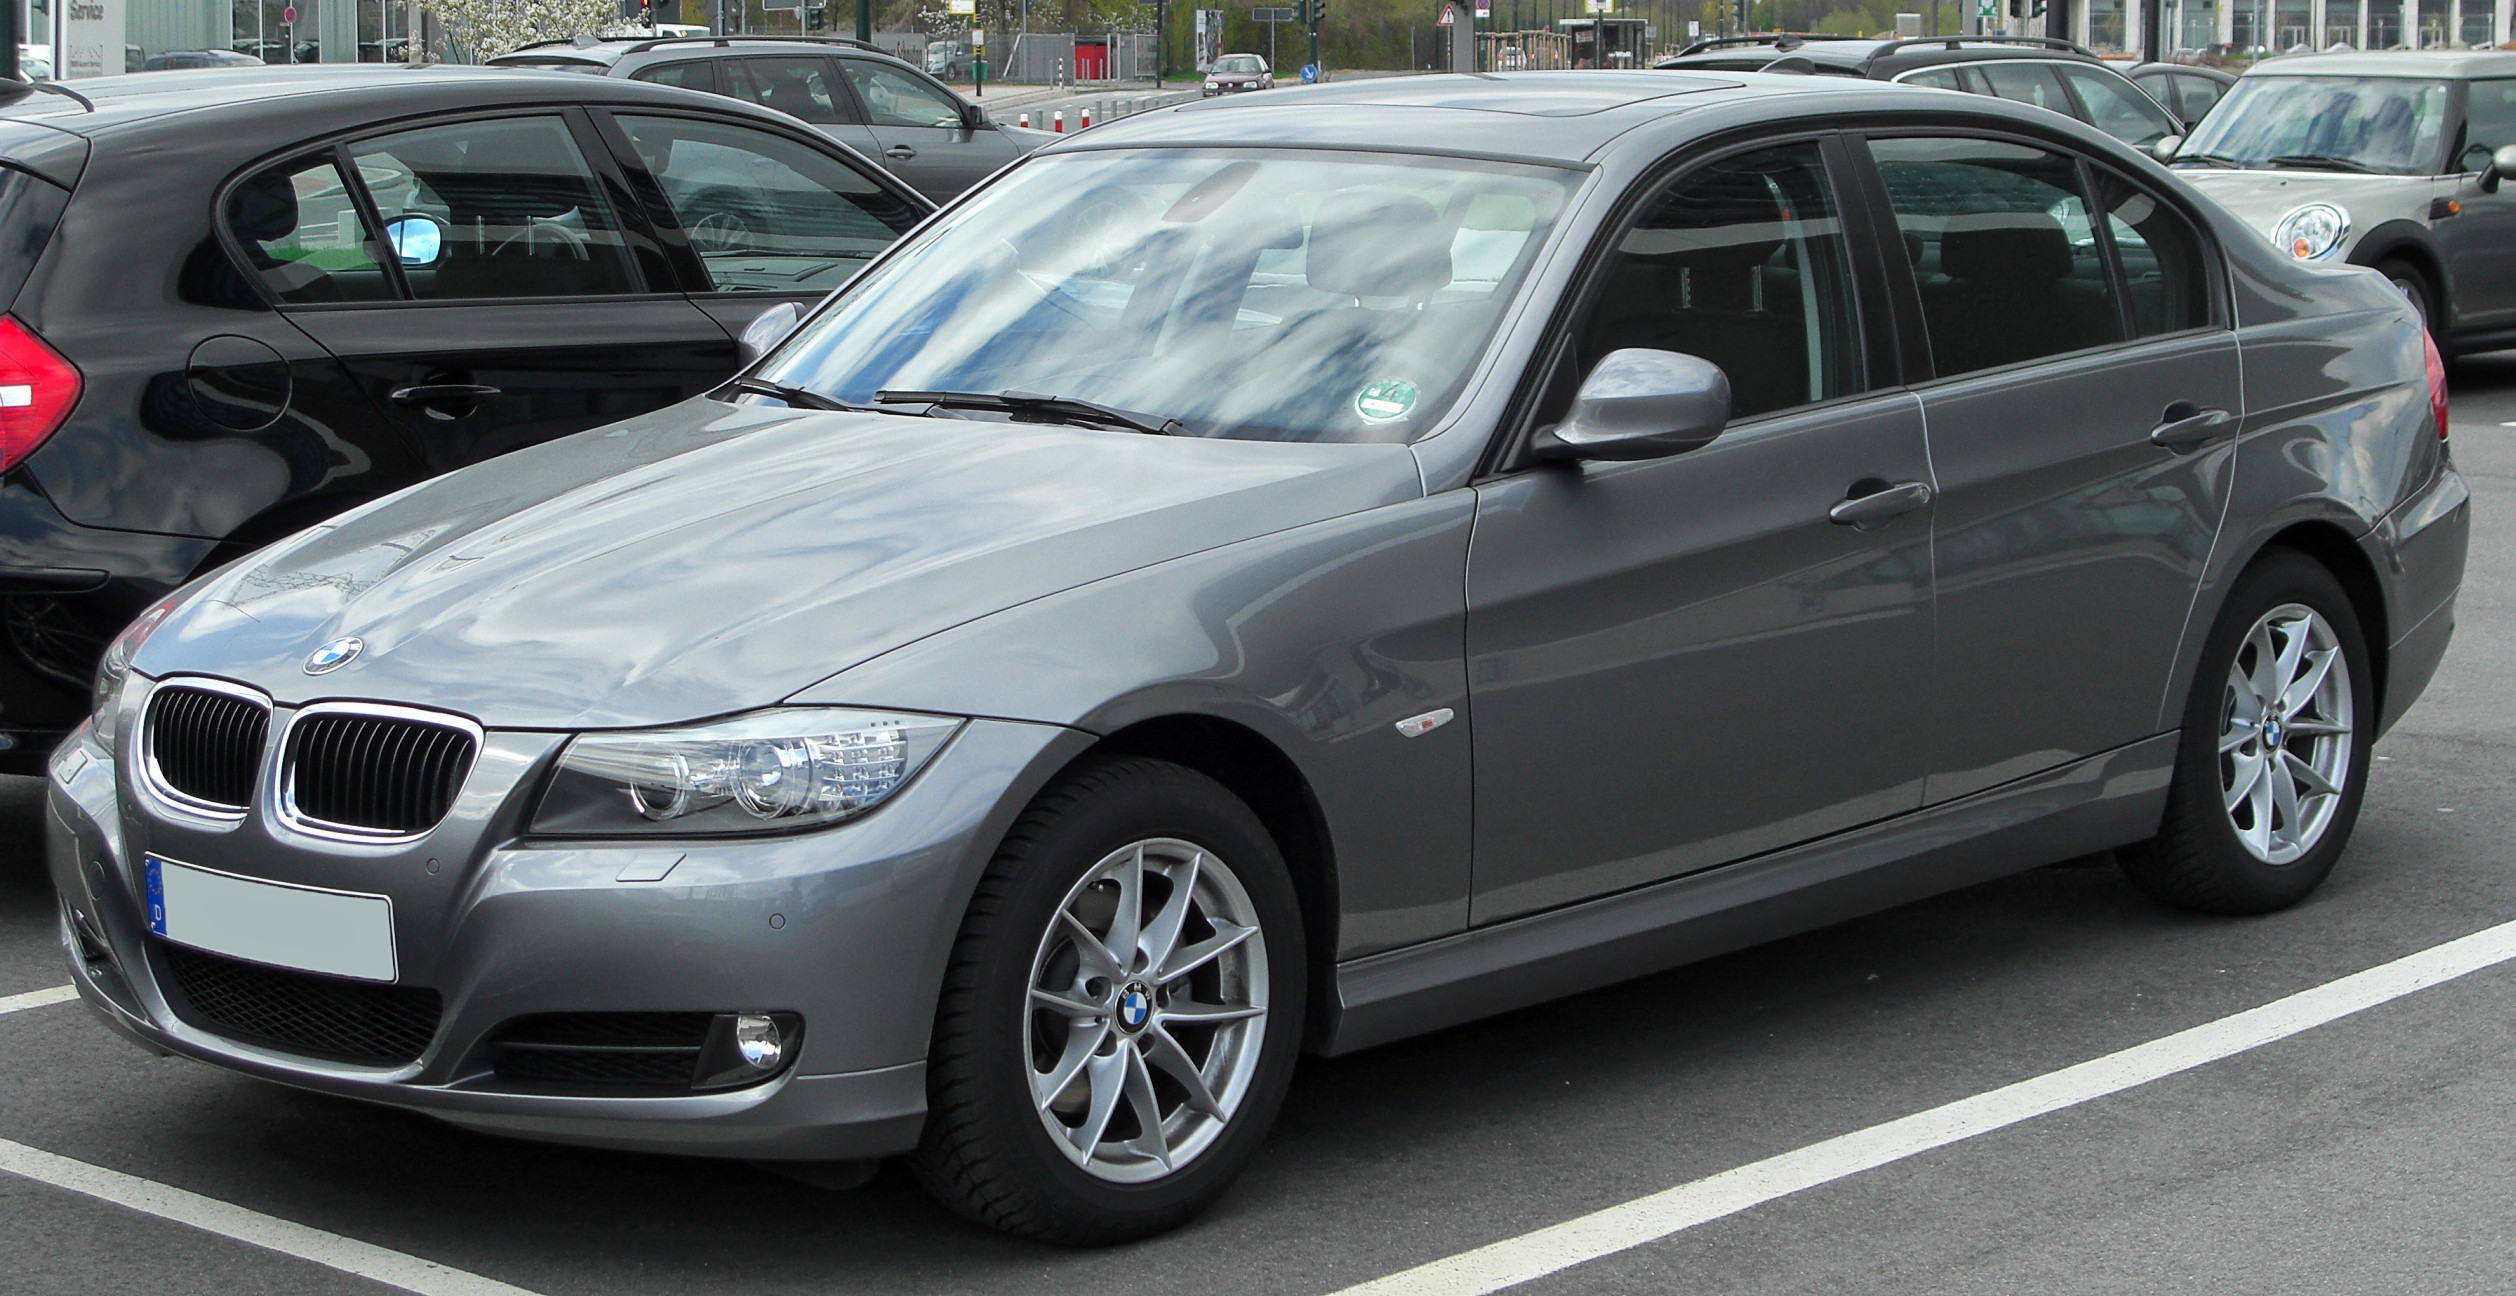 File Bmw 320i E90 Facelift Front 20100410 Jpg